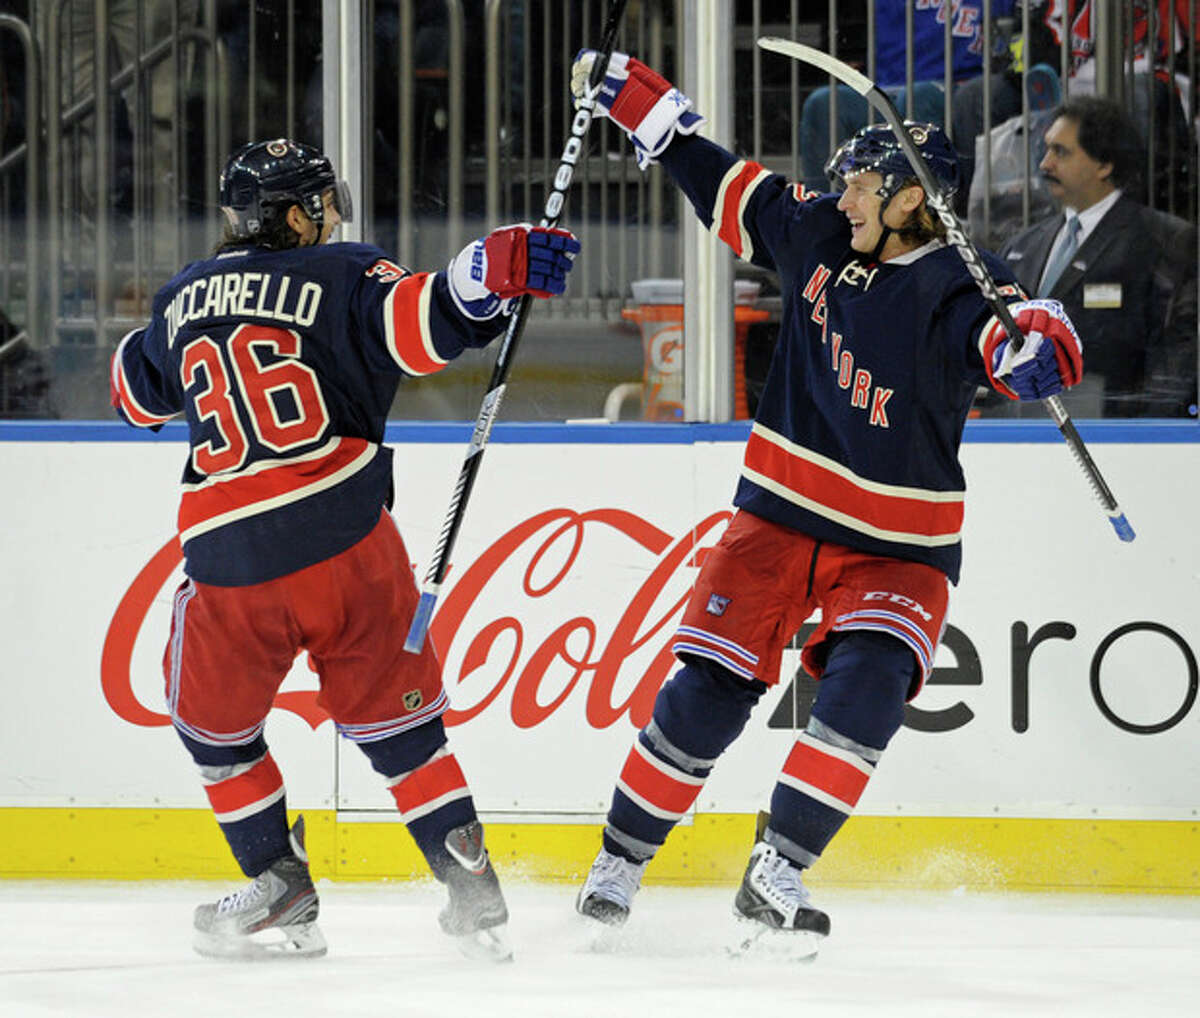 New York Rangers' Carl Hagelin, right, celebrates his goal with Mats Zuccarello during the second period of an NHL hockey game against the Carolina Hurricanes on Saturday, Nov. 2, 2013, at Madison Square Garden in New York. (AP Photo/Bill Kostroun)